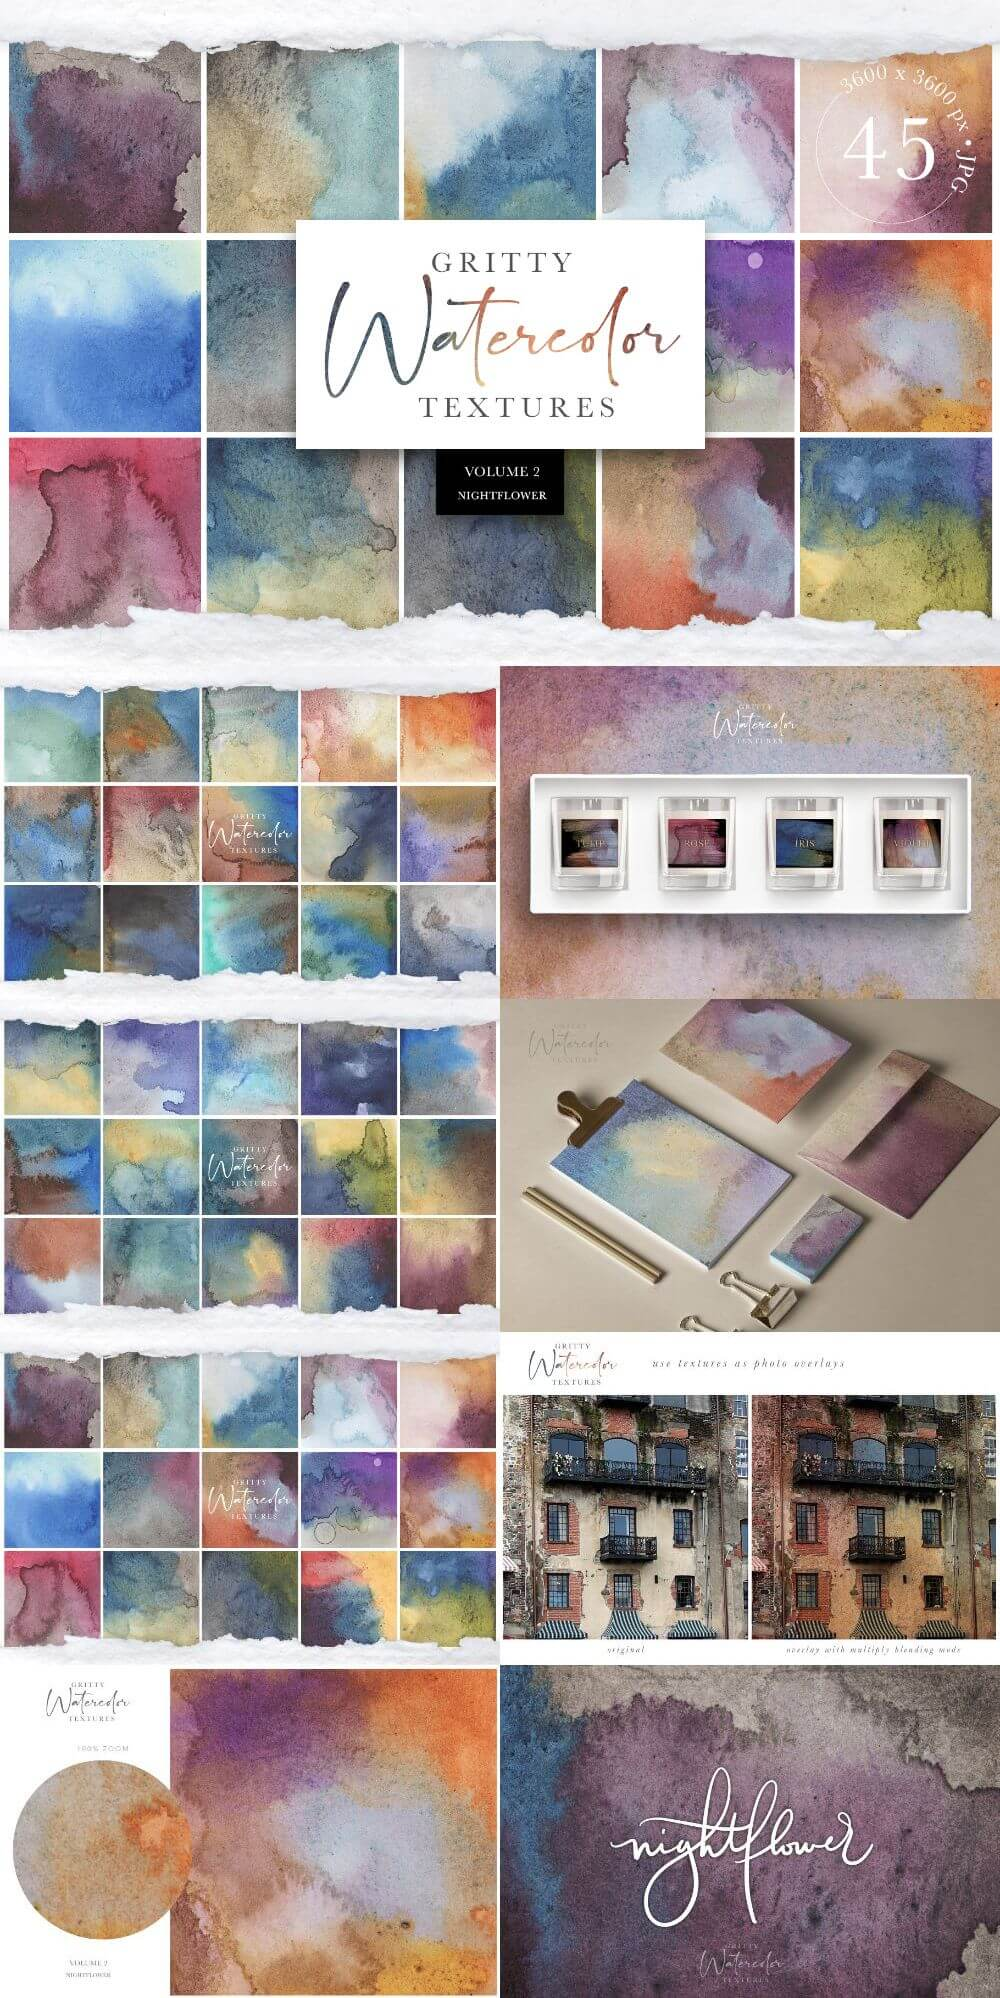 Gritty Watercolor Textures Vol. 2